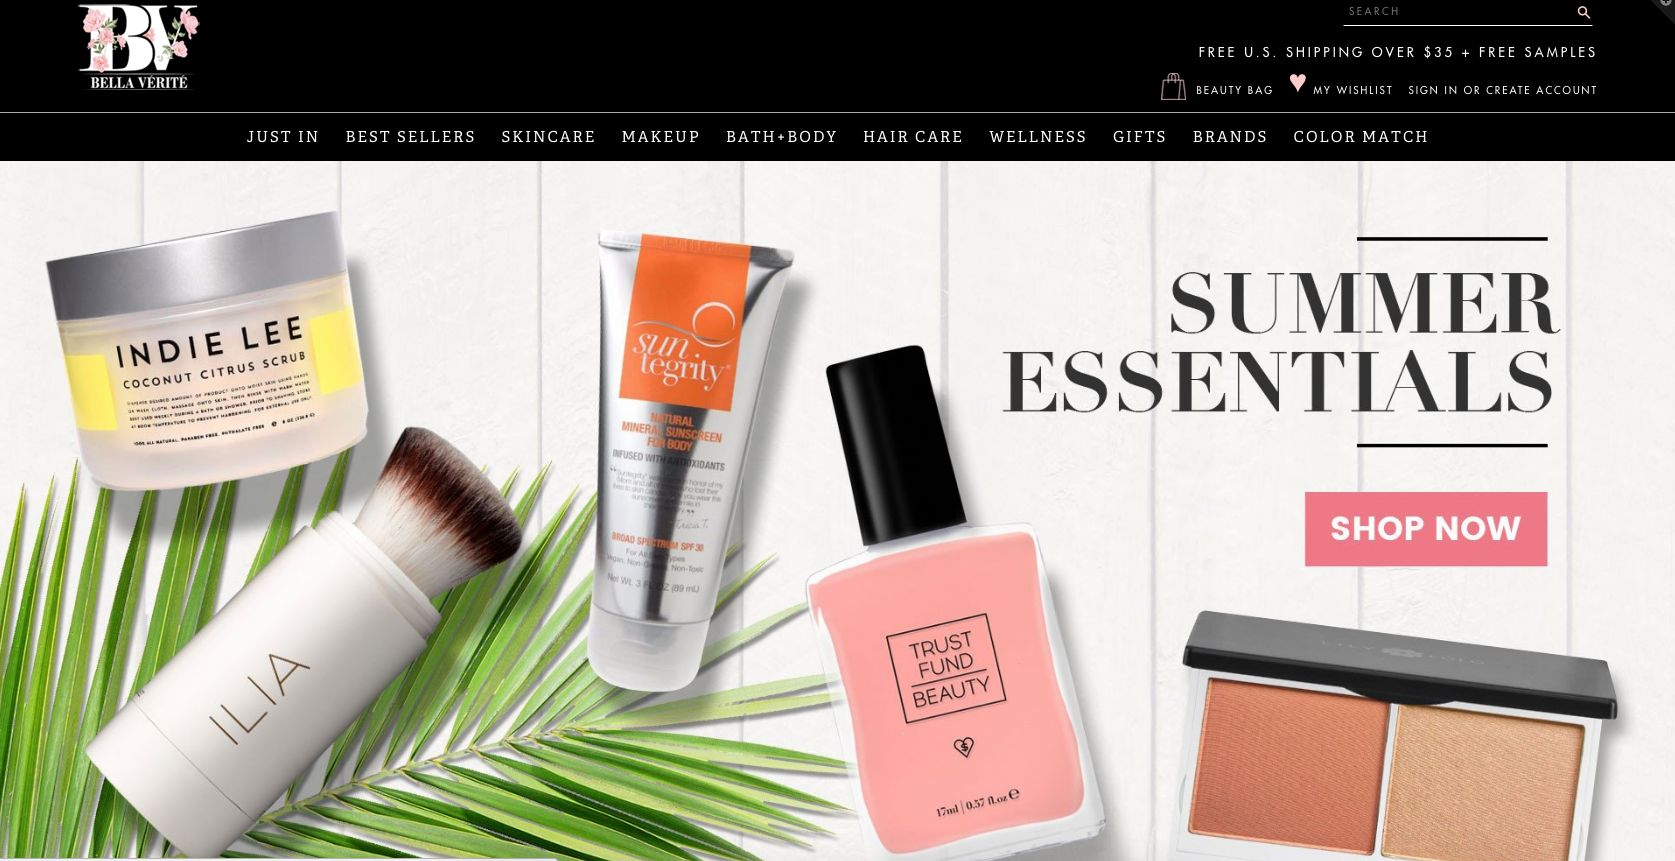 Beauty E-Commerce Websites Dropped From Shopify Payments Processing Service